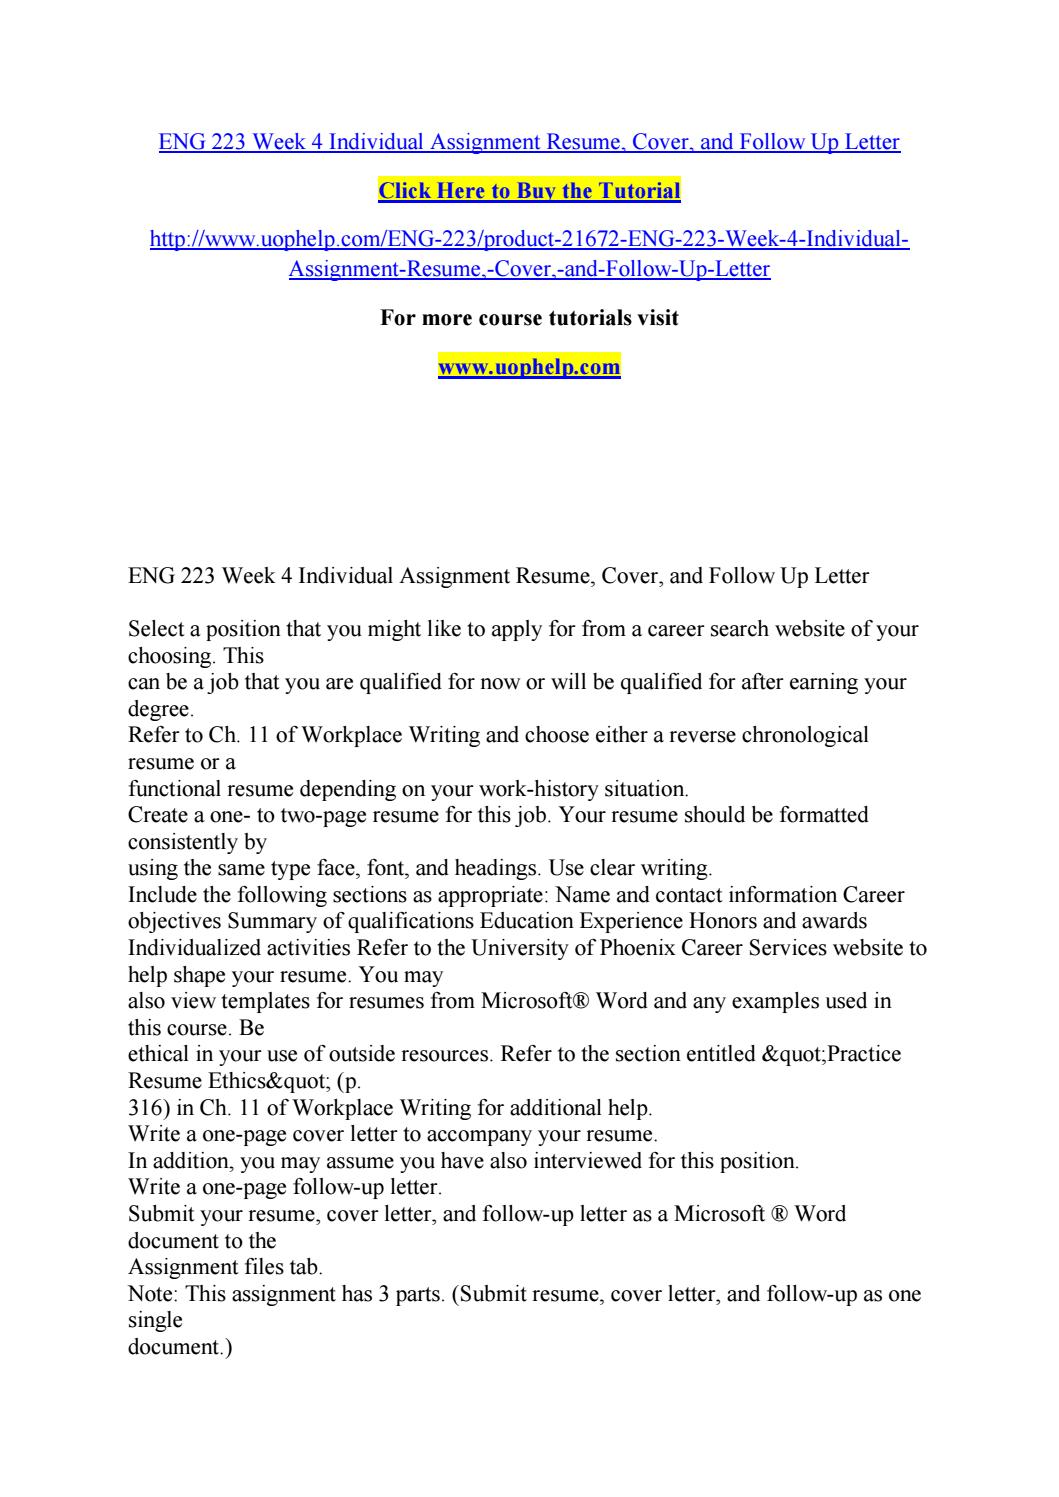 eng 223 week 4 individual assignment resume cover and follow up